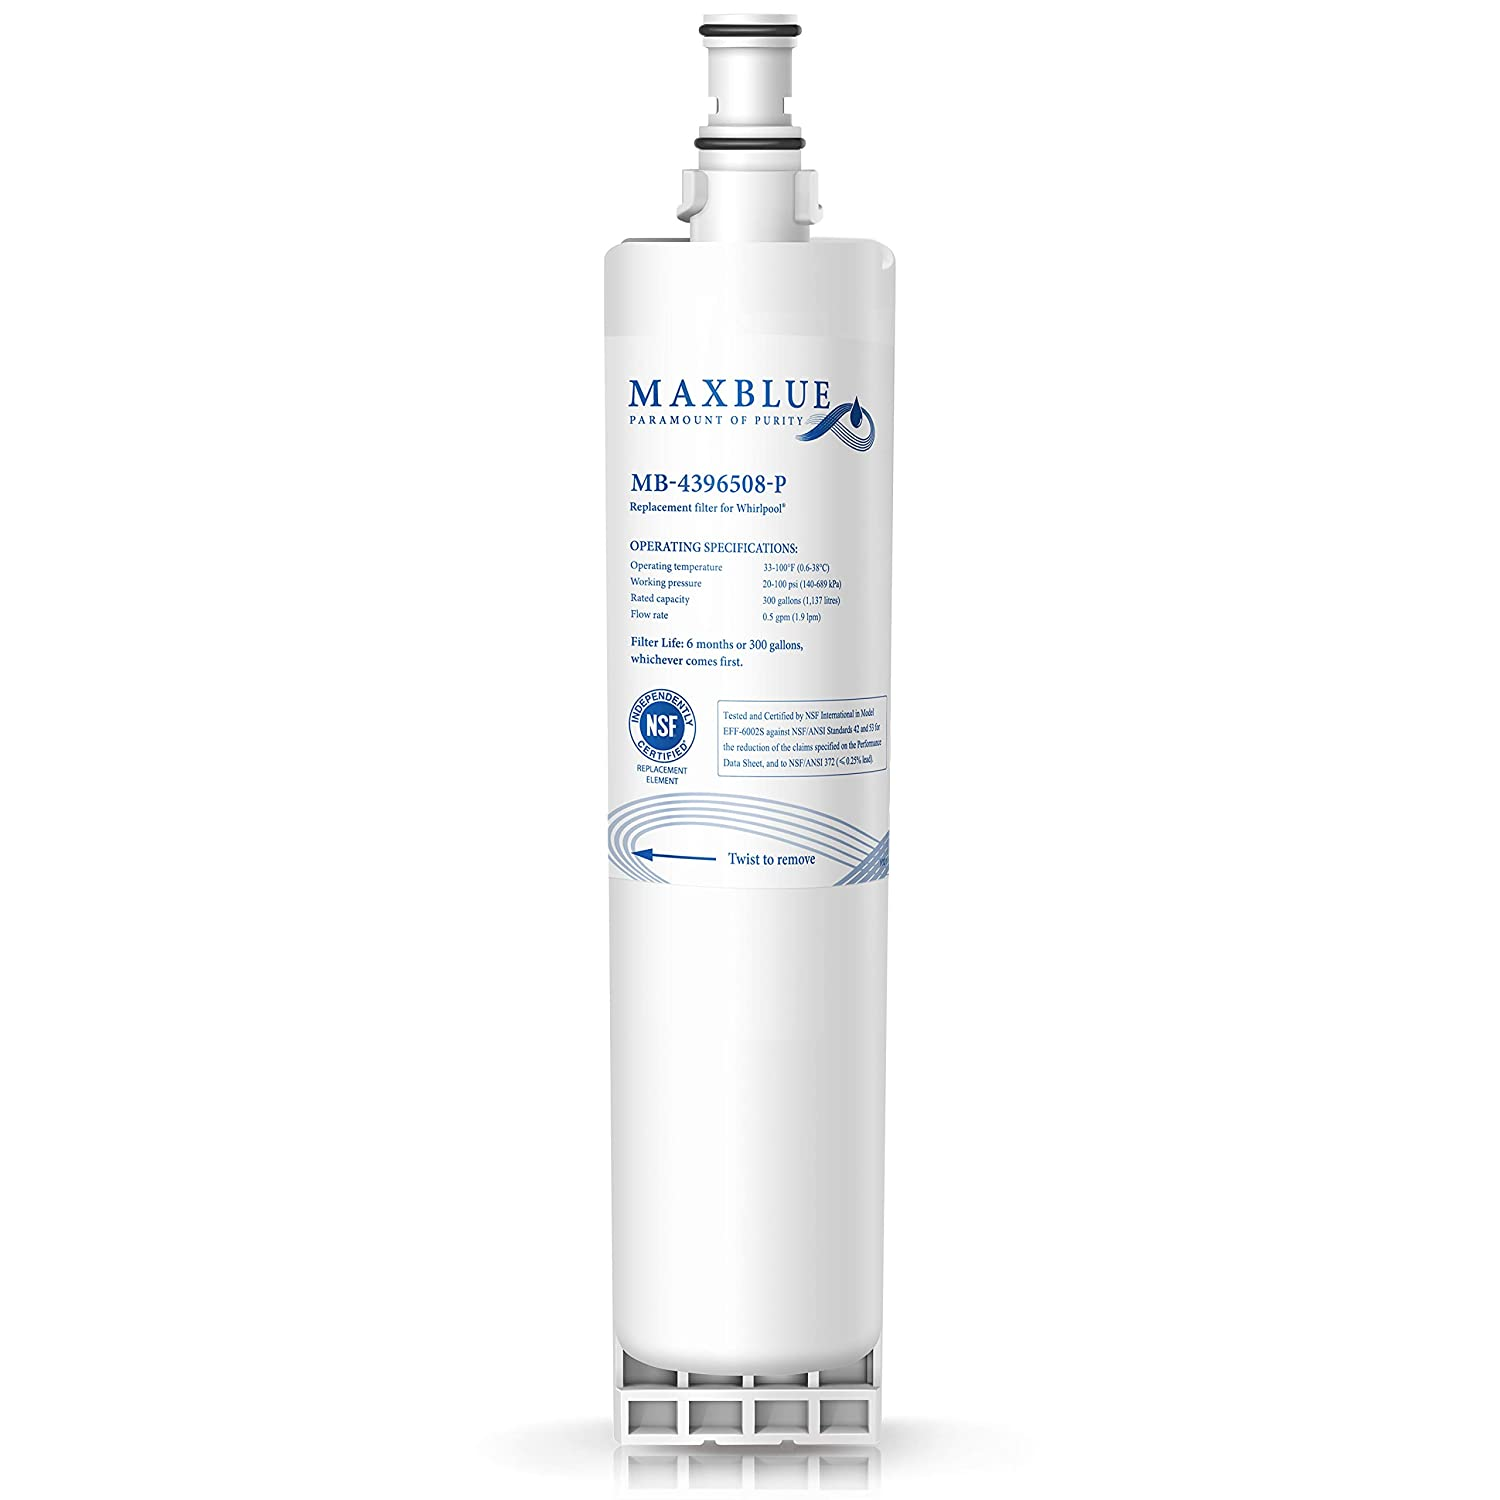 Maxblue NSF 53&42 Certified 4396508 Refrigerator Water Filter, Replacement for Filter 5, 4396510, NLC240V, 4396508P, 4392857 WF-4396508, Kenmore 9010,PUR W10186668